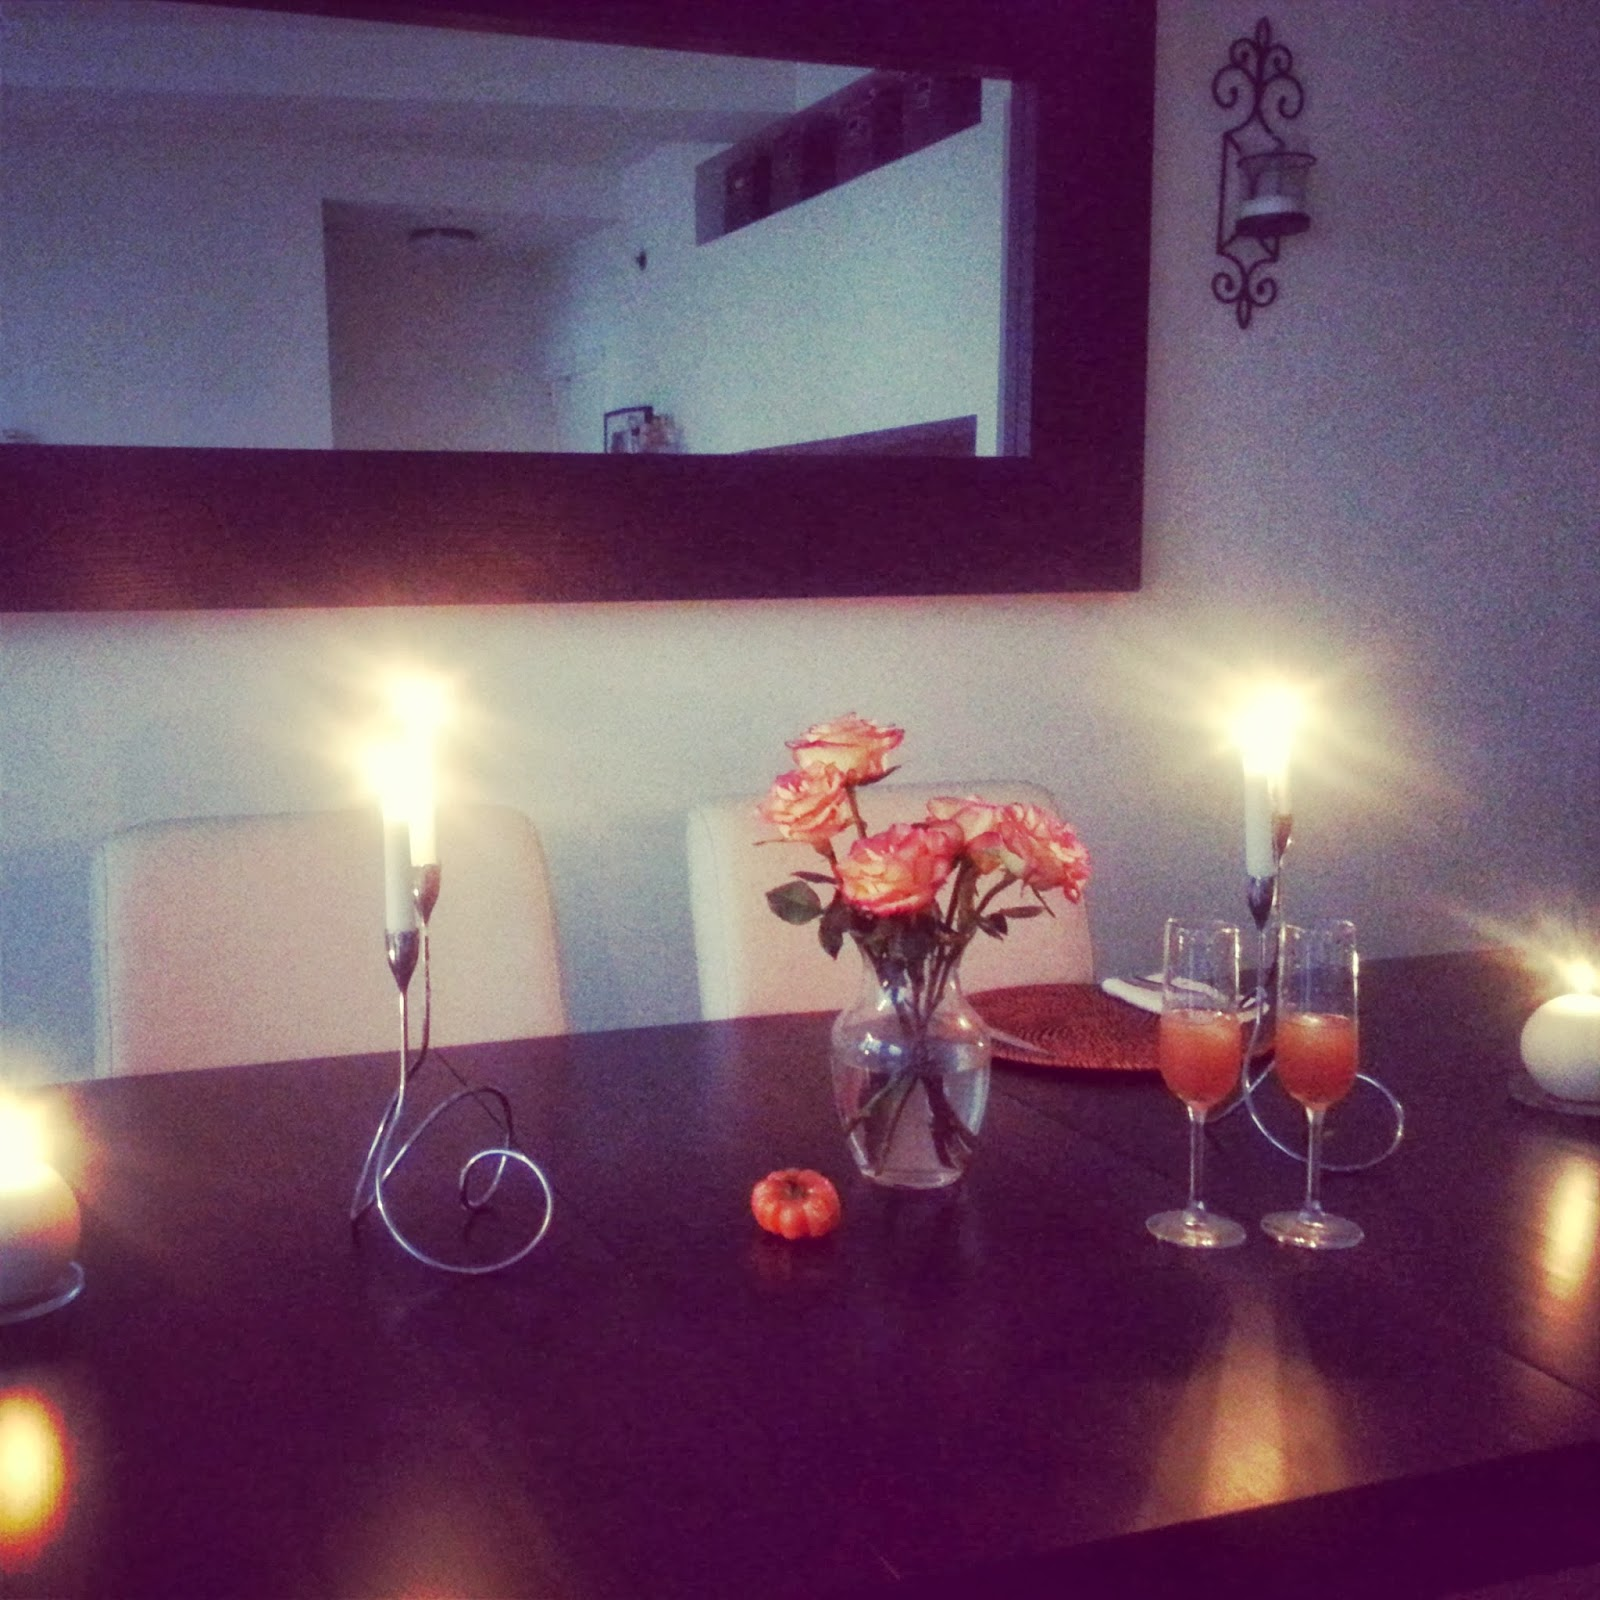 Orange roses, Derby cocktails, and candlelight  |  Easing into winter  |  http://afeatherynest.blogspot.com